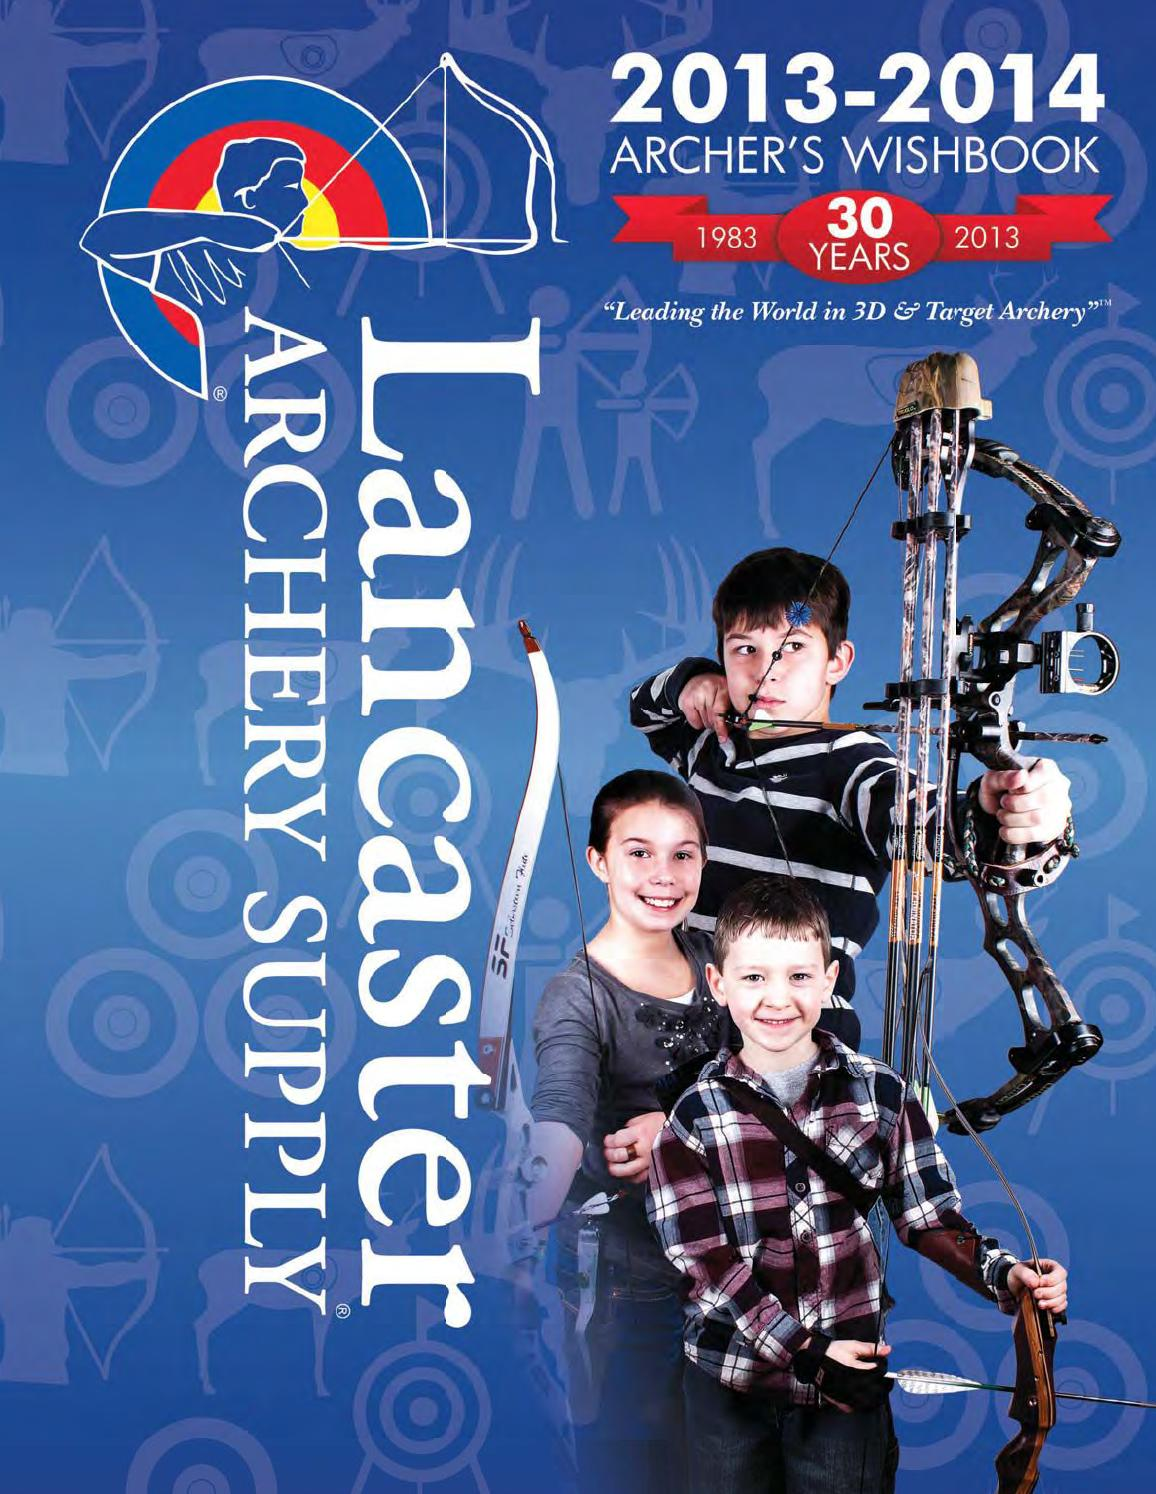 Lancaster archery supply 'leading the world in 3d & target